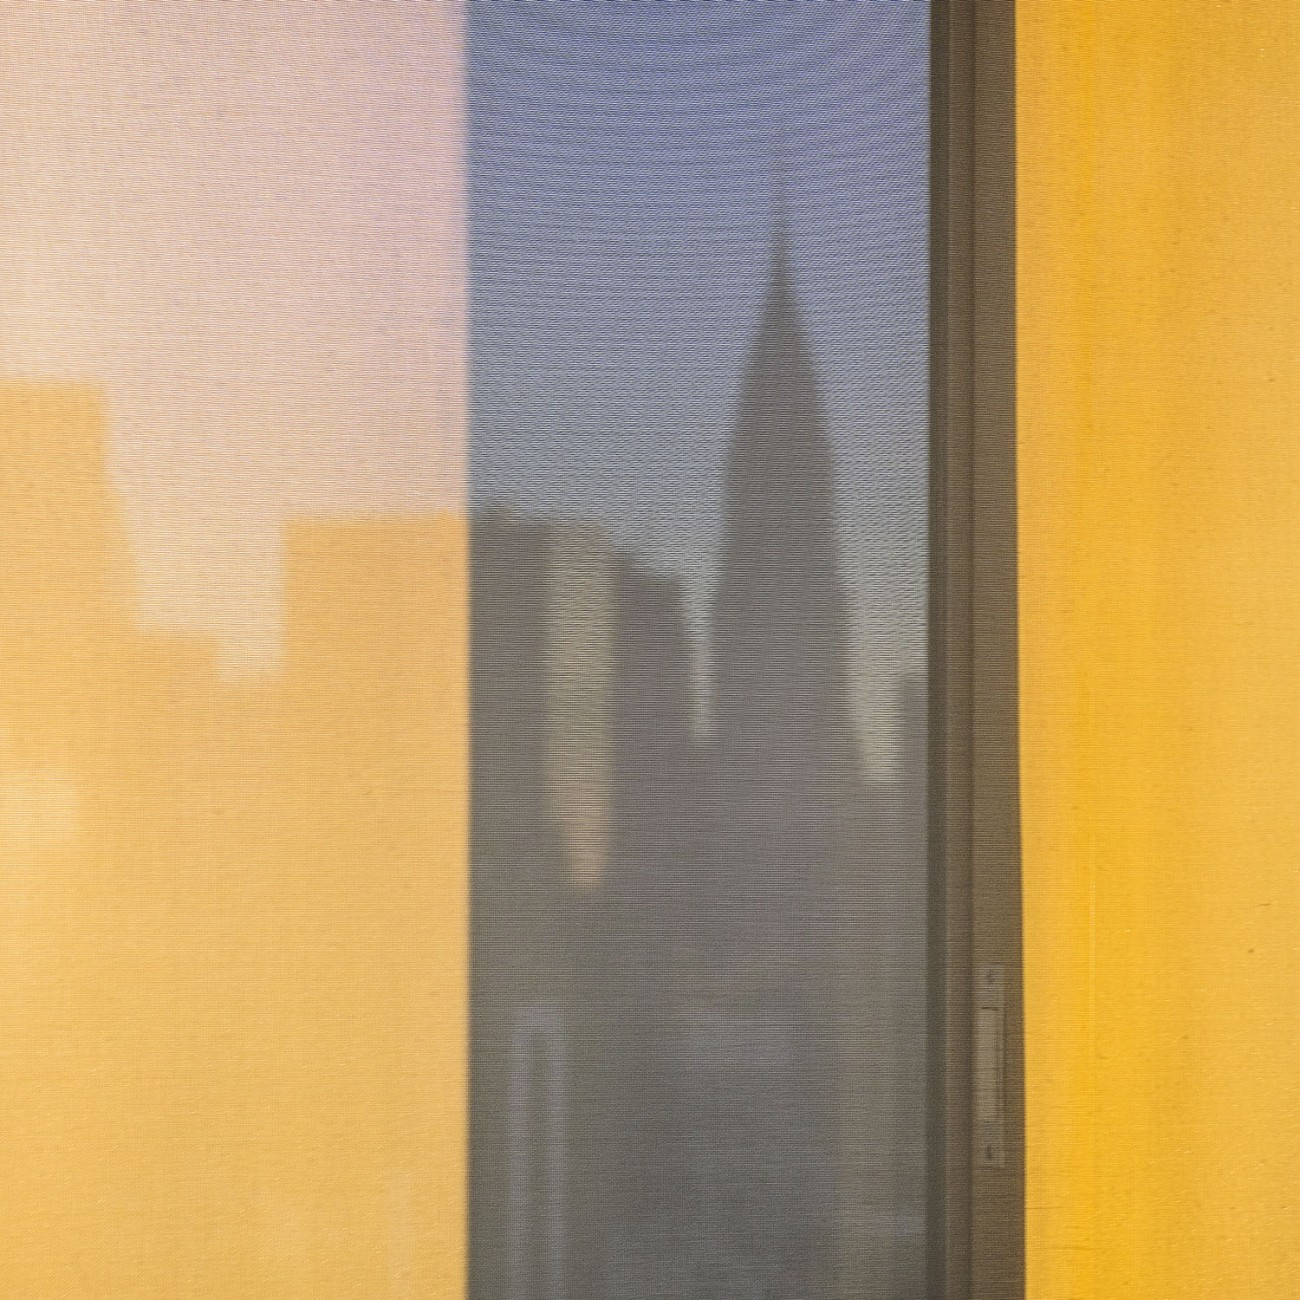 City silhouette at dawn, NY, 1016